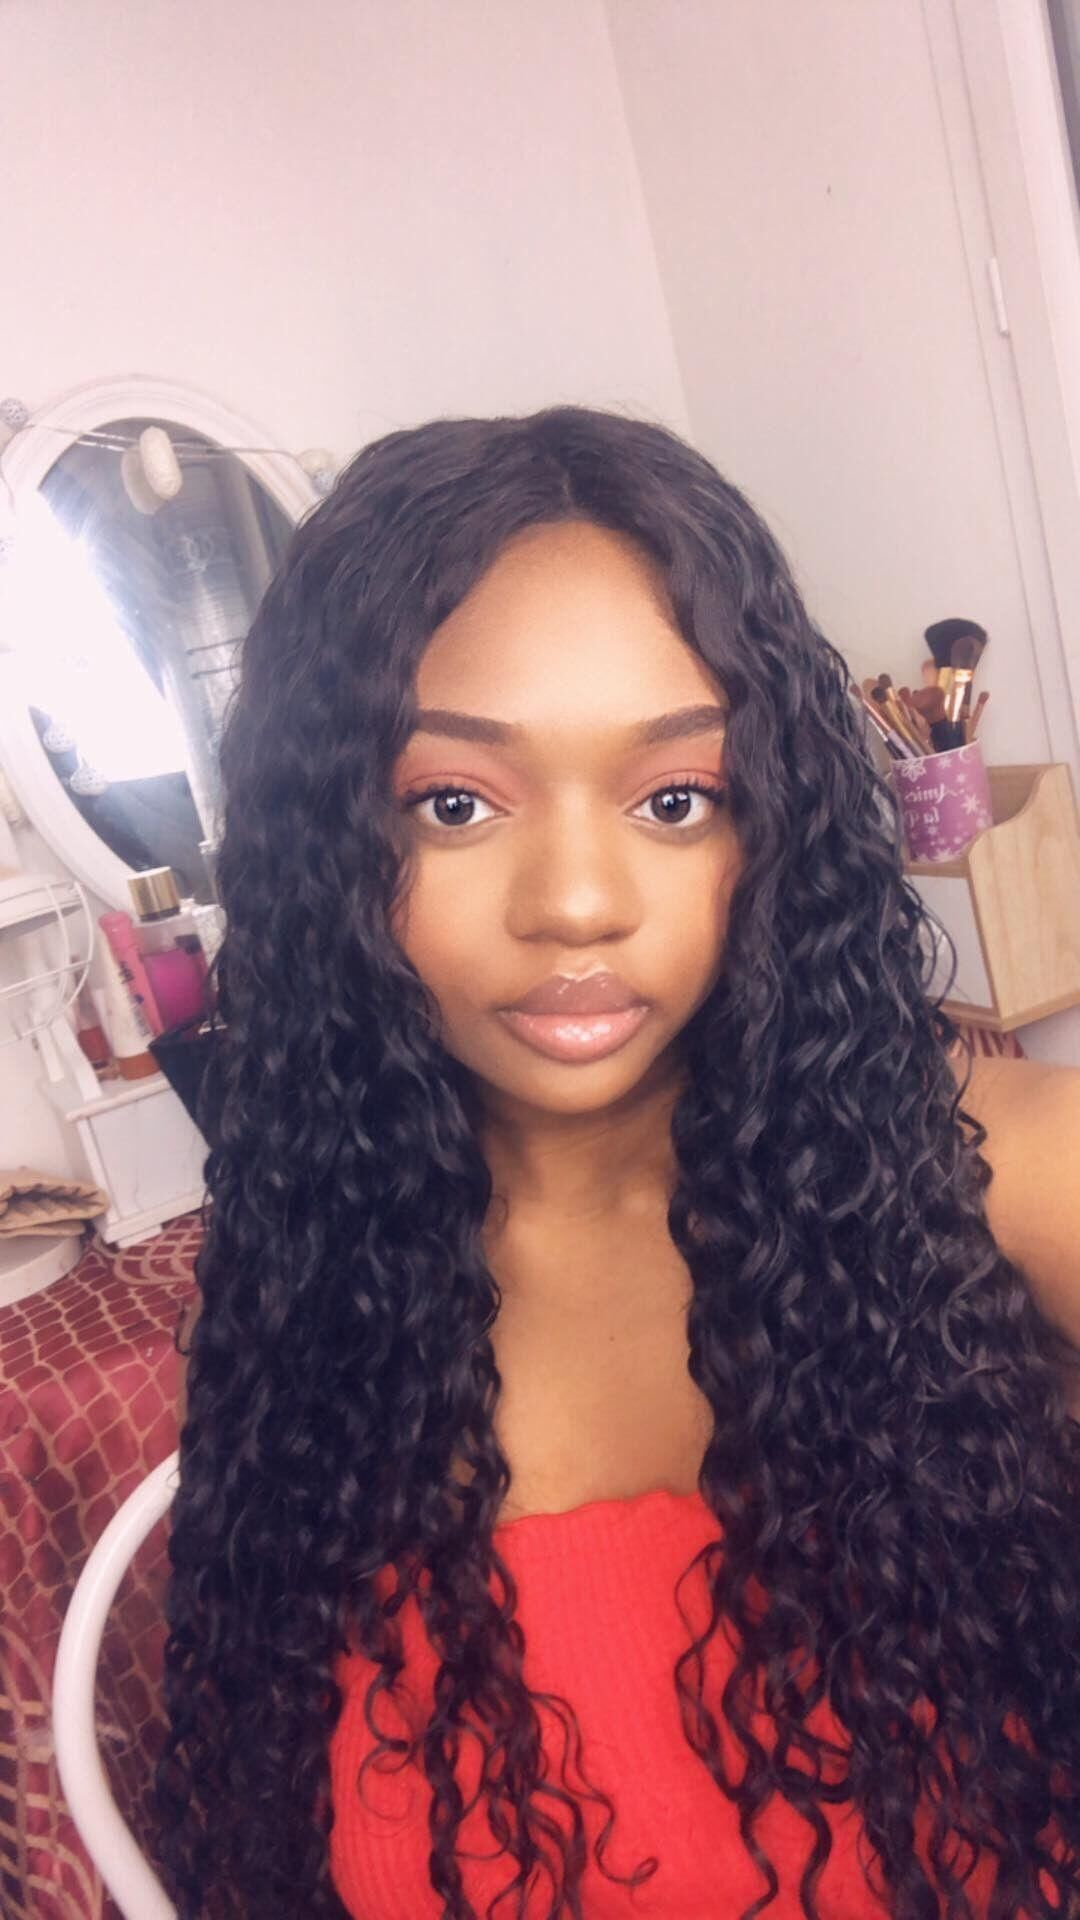 Fashion Style Alipearl Brazilian Deep Wave 4 Bundles With Frontal Closure Human Hair Bundles With Closure Remy Hair Extension Natural Color Hair Extensions & Wigs